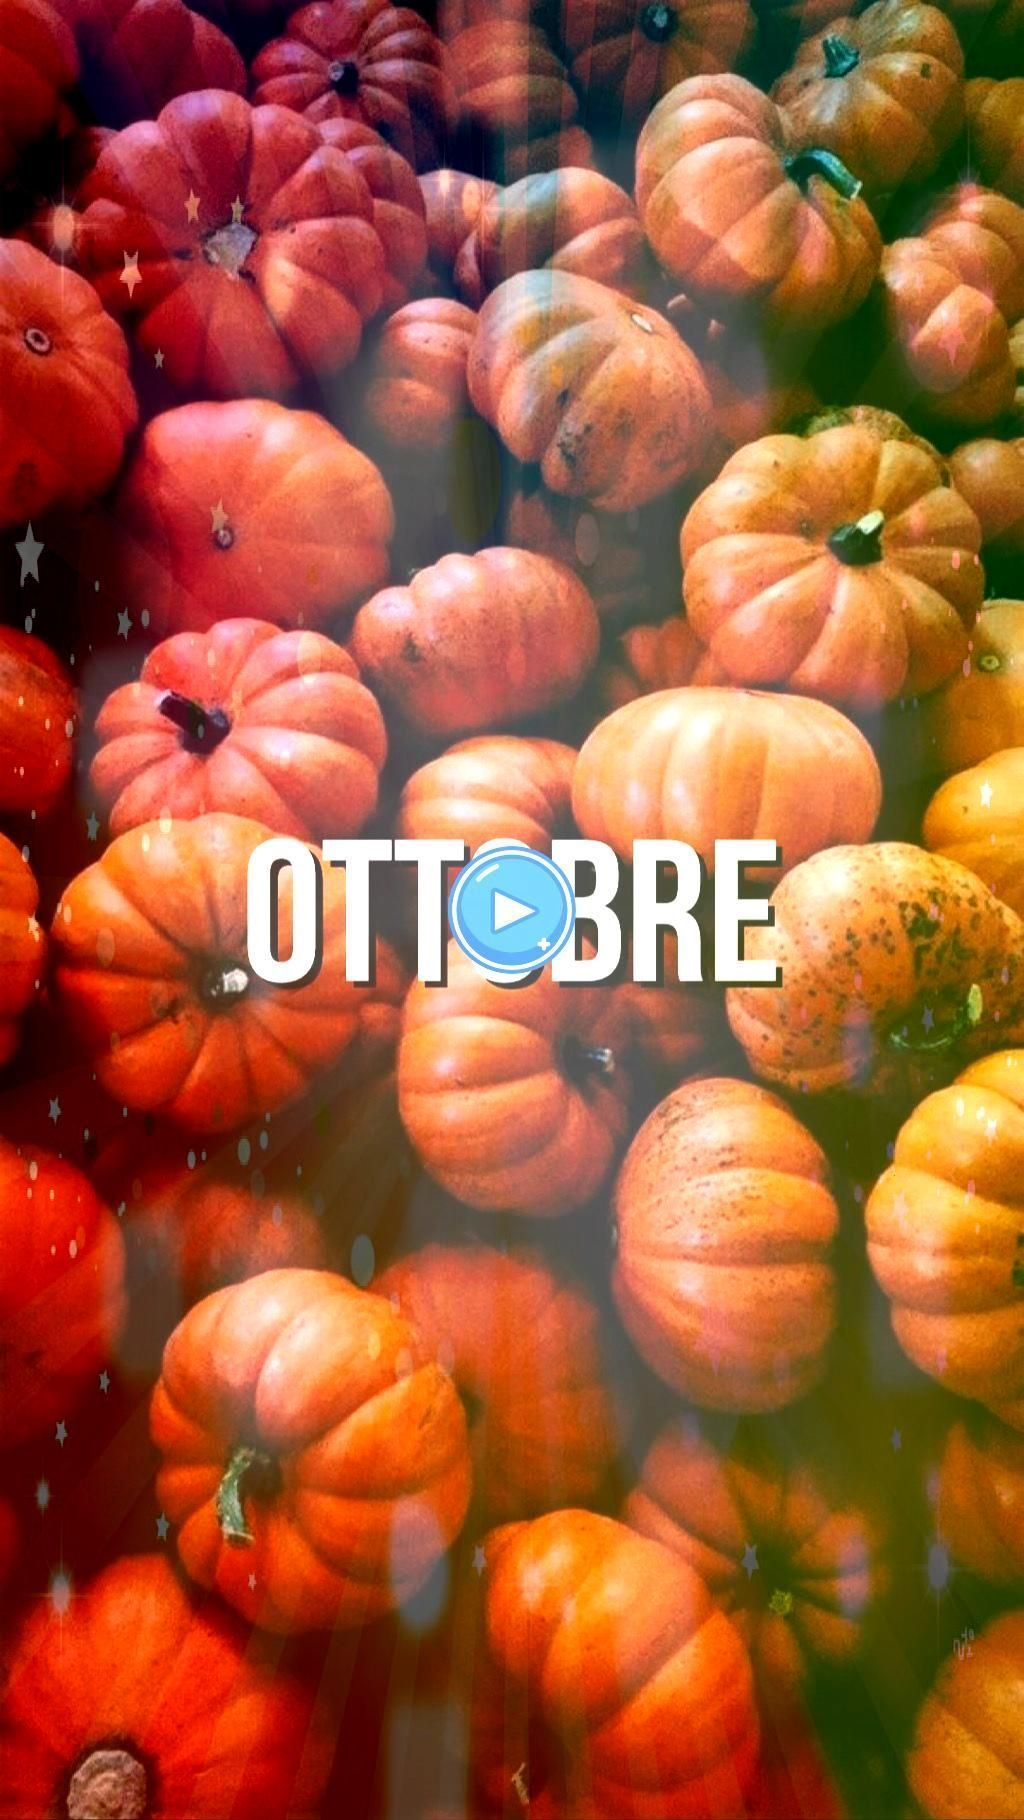 #octoberlockscreen #octoberbackground #octoberwallpaper #autumnwallpaper #welcomeoctober #welcomeautumn #fallwallpaper #hellooctober #sfondiiphone #october2019 #helloautumn #autumnvibes #welcomefall #octobermood #backgroundoctober wallpaper ???? october wallpaper ????october wallpaper ???? october wallpaper ????  in love  #octoberlockscreen #octoberbackground #octoberwallpaper #autumnwallpaper #welcomeoctober #welcomeautumn #fallwallpaper #hellooctober #sfondiiphone #october2019 #helloautumn #au #octoberwallpaper